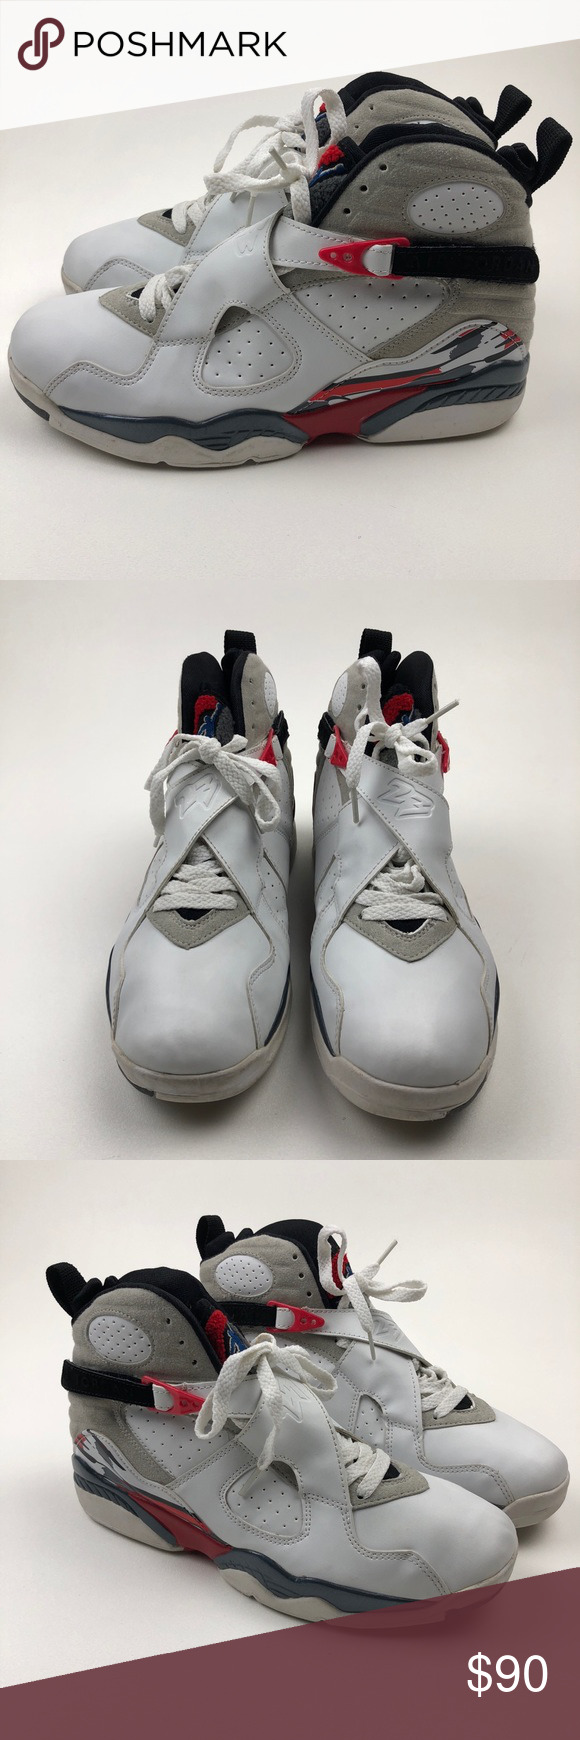 detailed look c6ef9 2b2cf 2003 NIKE AIR JORDAN 8 VIII RETRO WHITE BLACK RED 2003 NIKE AIR JORDAN 8  VIII